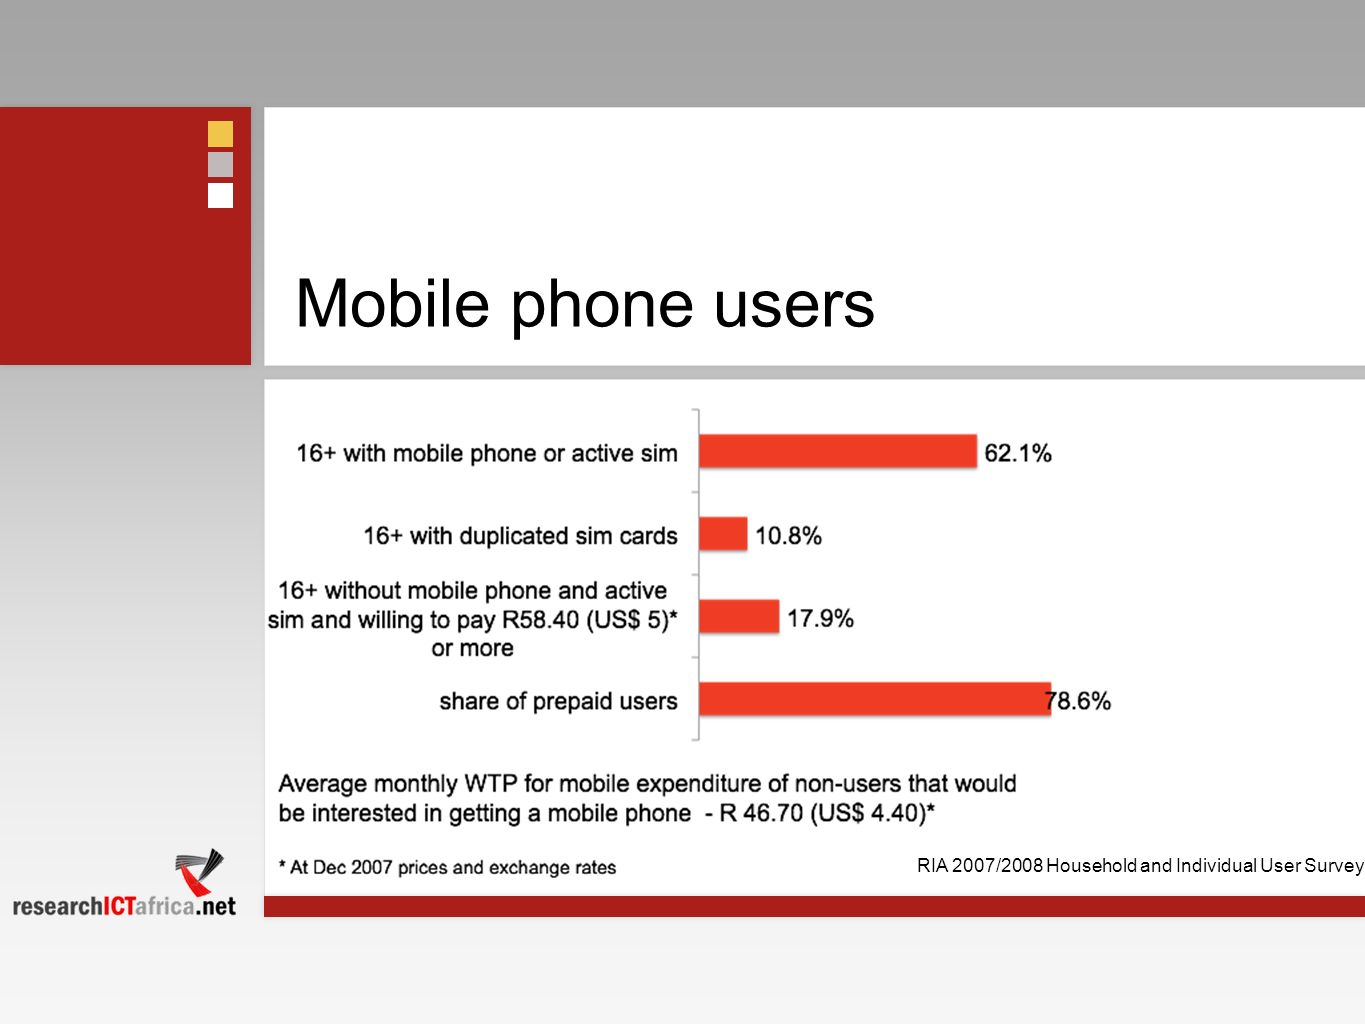 Mobile phone users RIA 2007/2008 Household and Individual User Survey